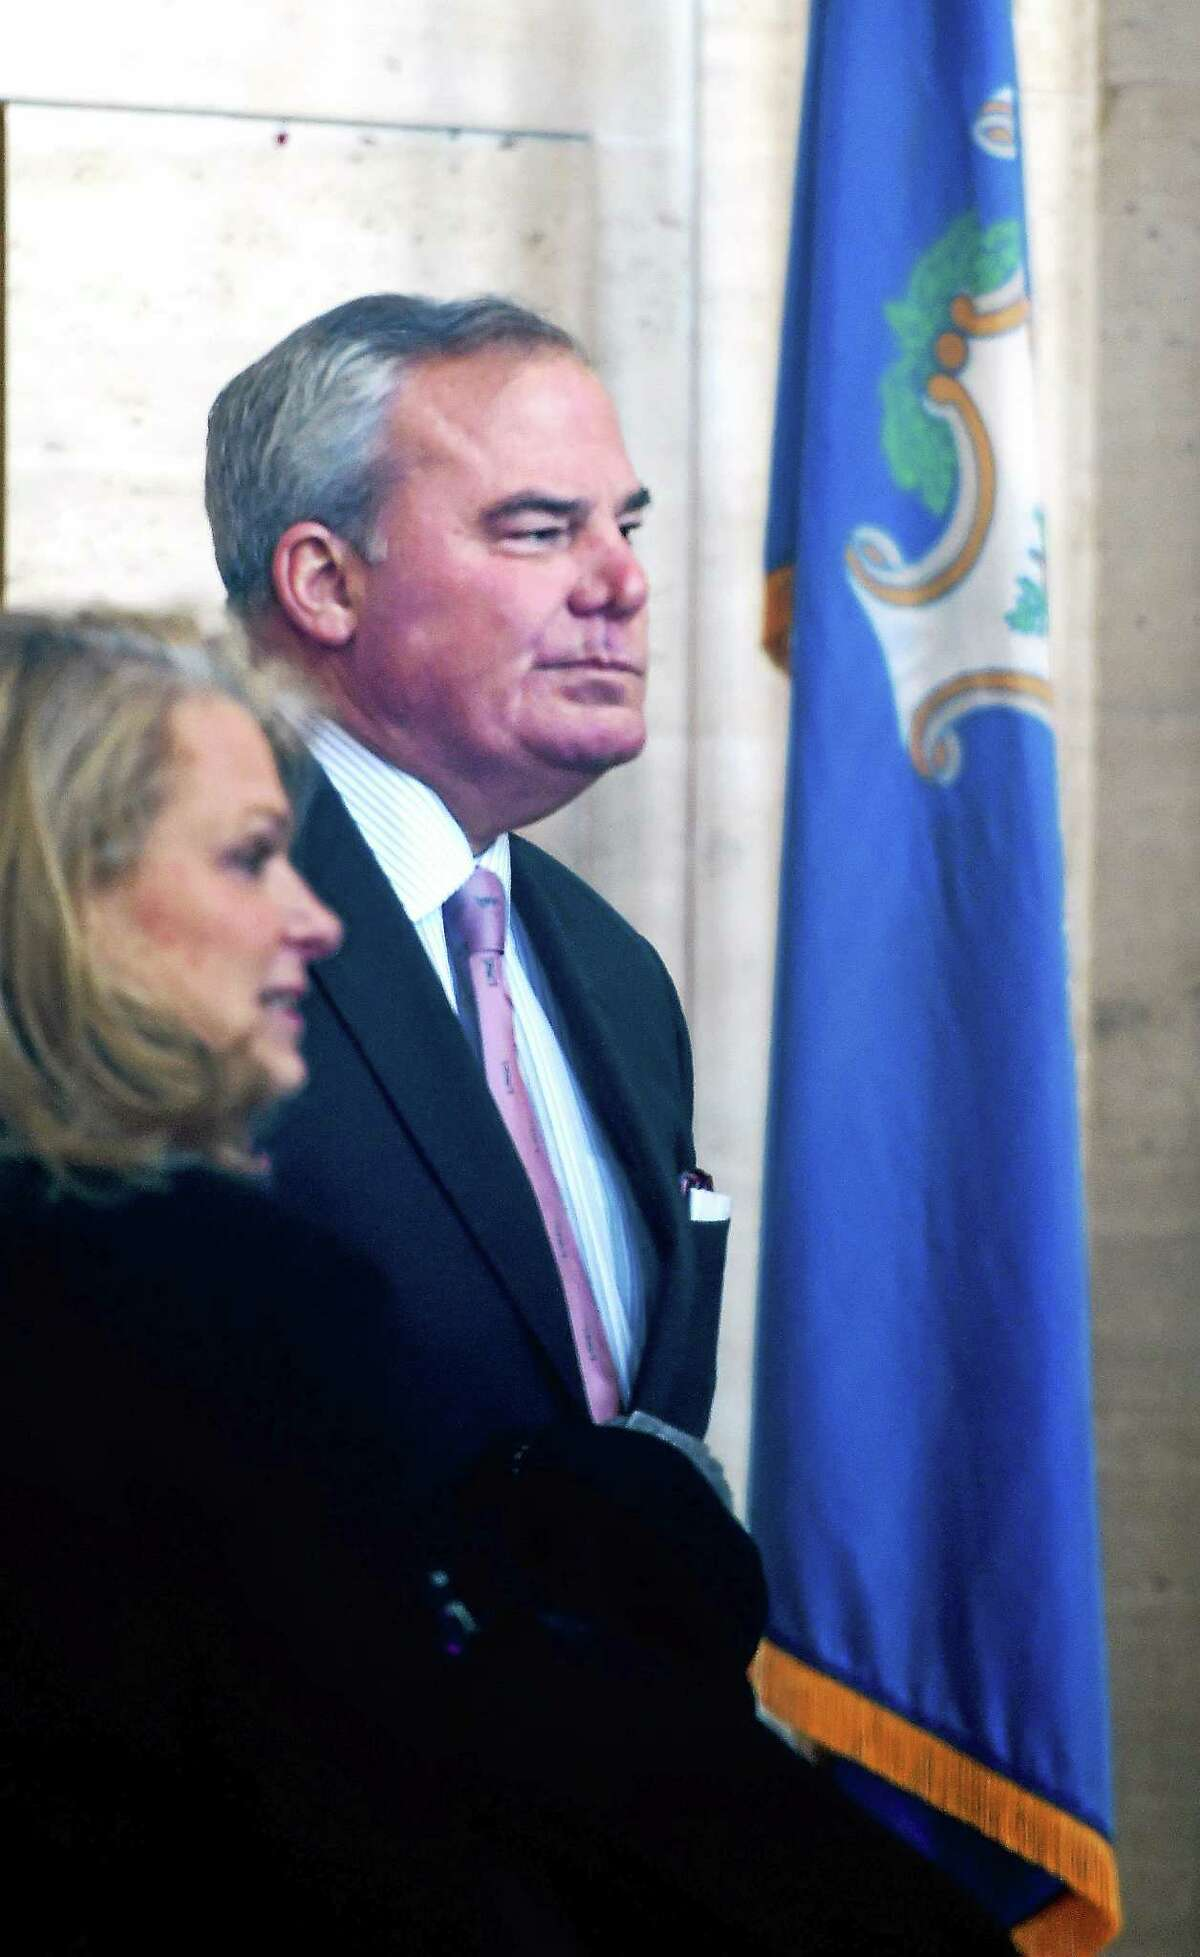 Former Connecticut Governor John Rowland, center, waits inside the lobby of Federal Court in New Haven before sentencing with his wife, Patty, left, Wednesday.